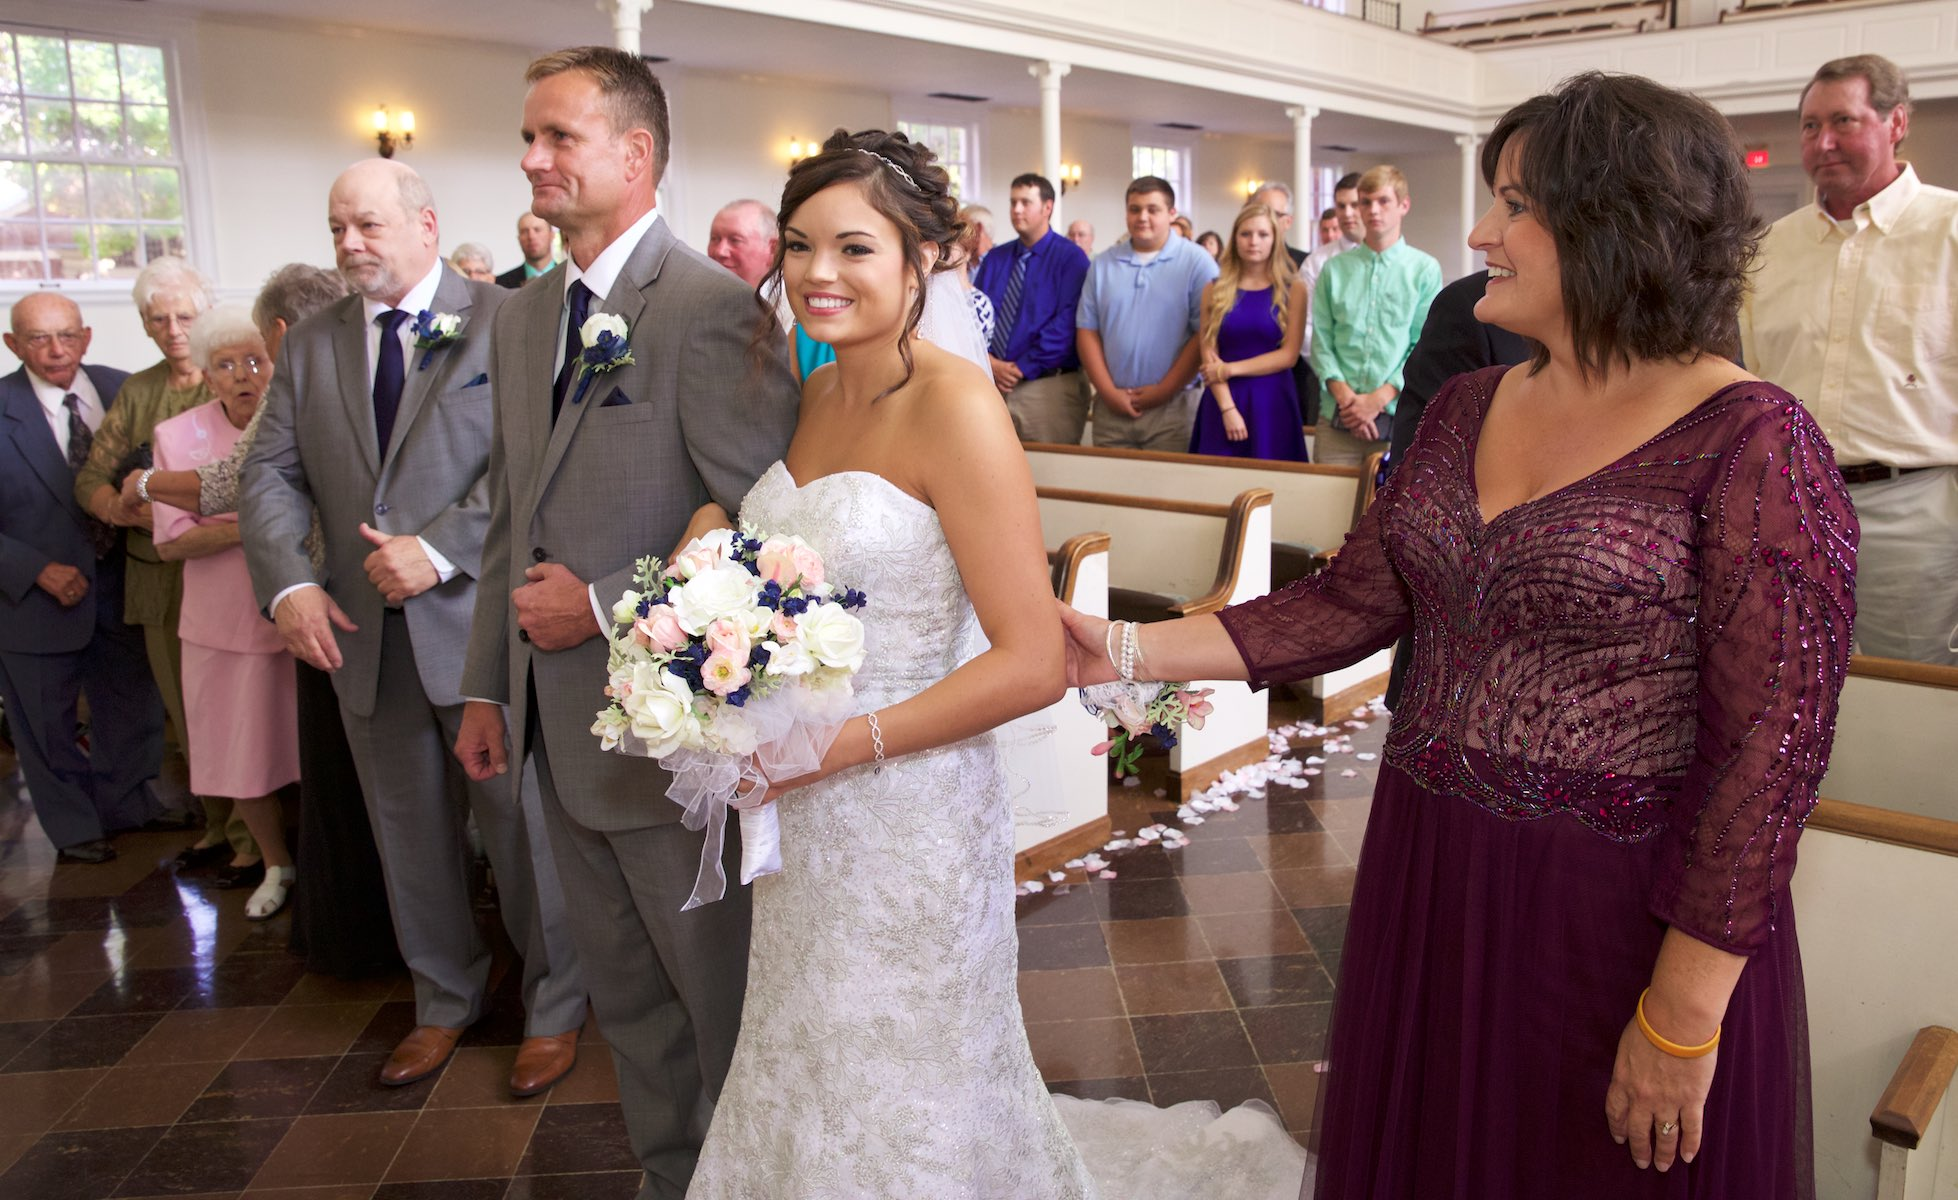 Adria shares a moment with her mom during the start of the wedding ceremony, Annie Merner Chapel, MacMurray College, Jacksonville, Illinois. Wedding photography by Steve & Tiffany Warmowski.